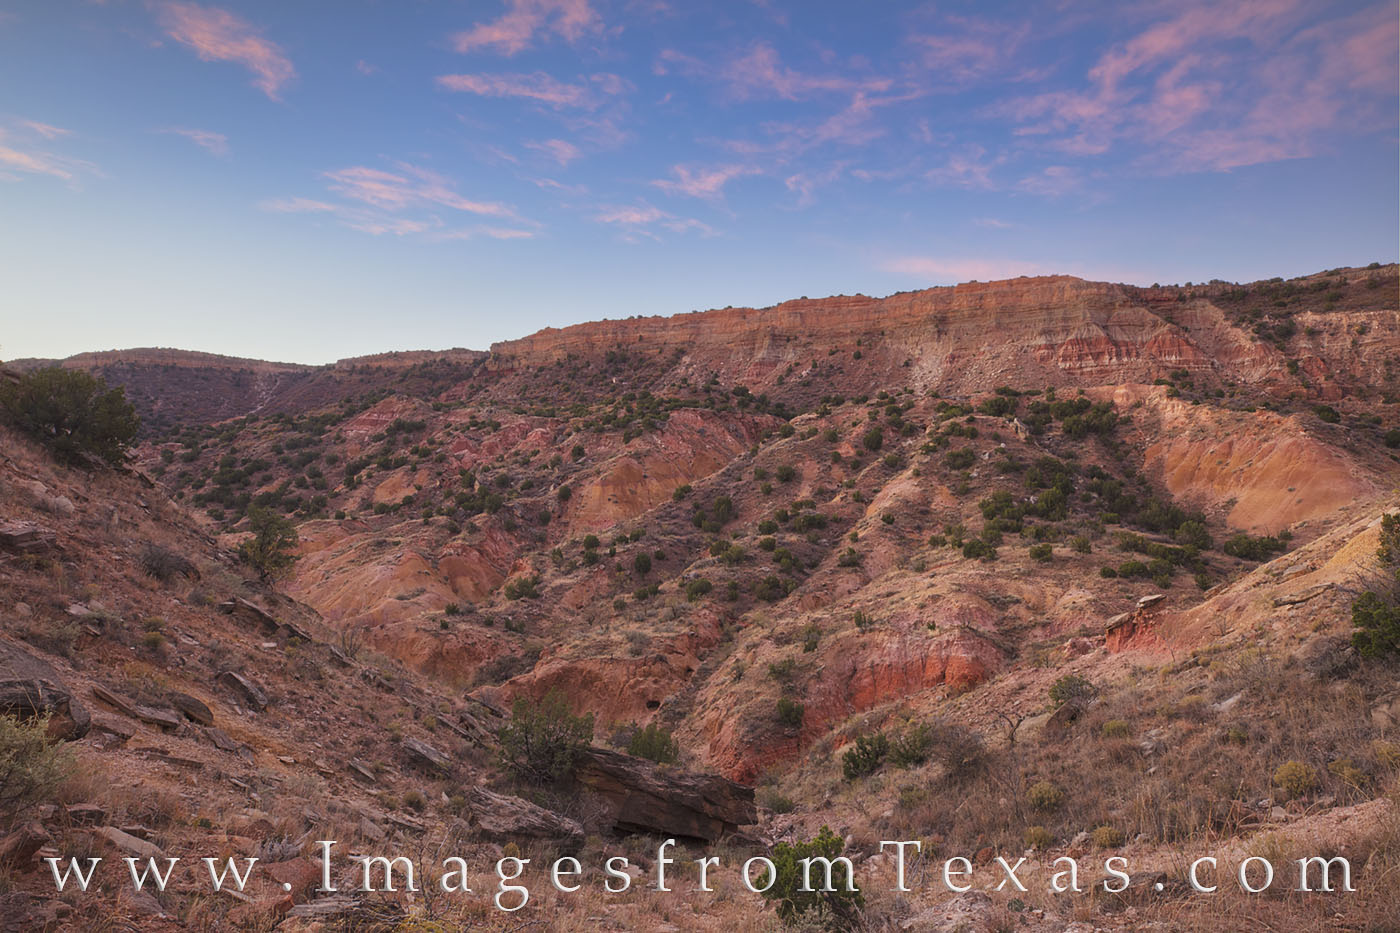 After an early morning scramble to the rim of Palo Duro Canyon, the sun's first light turned the sky pink and blue for a few...